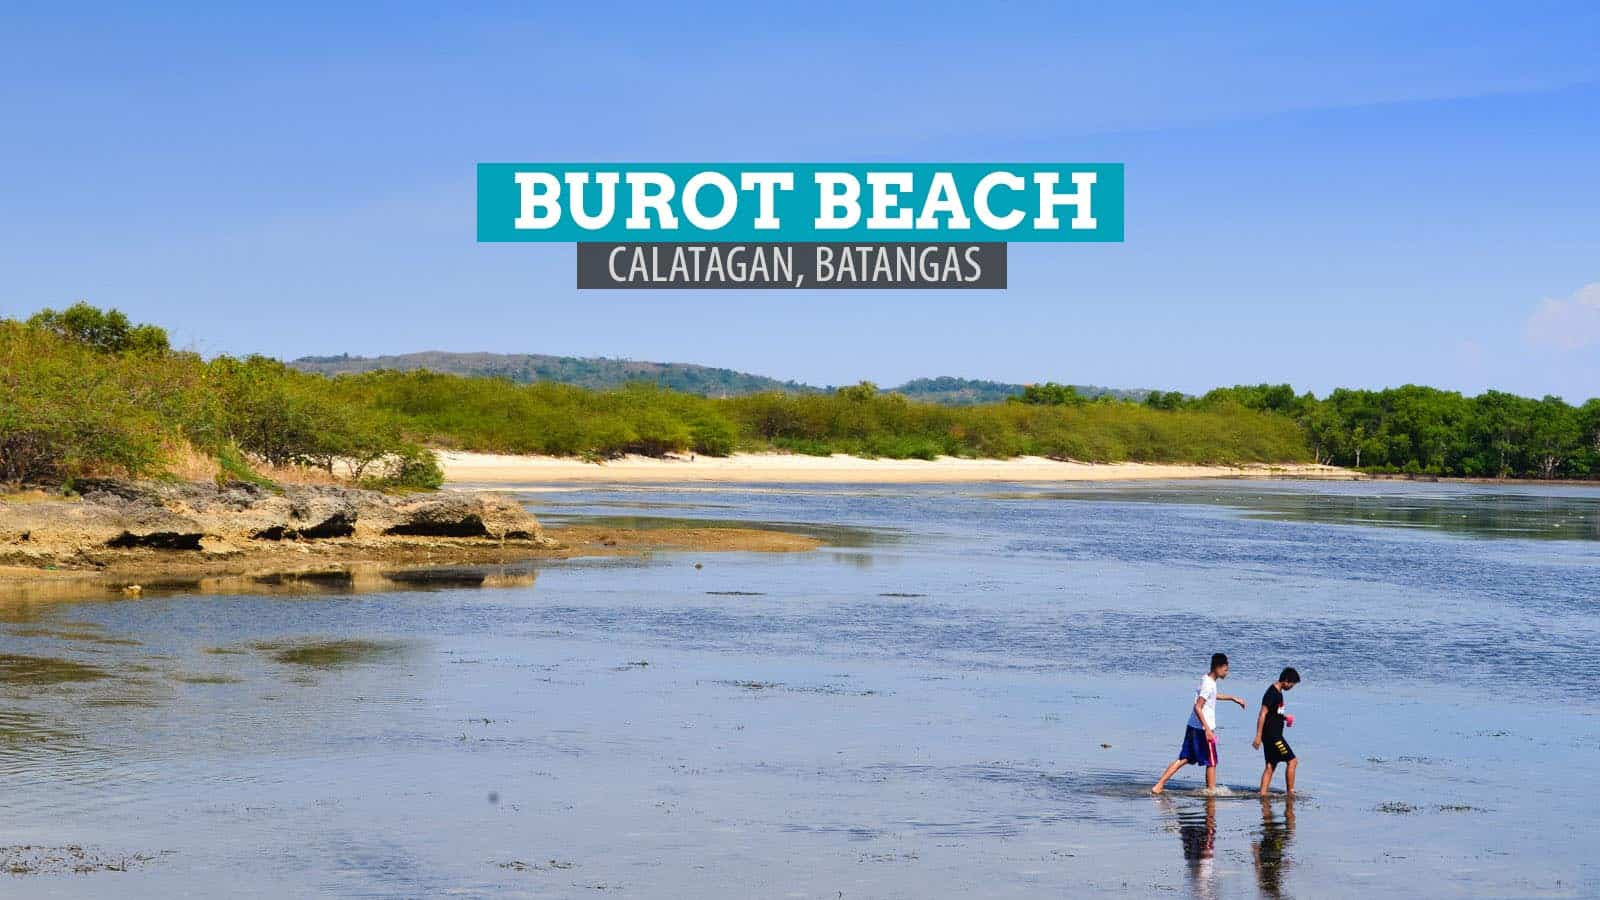 BUROT BEACH in Calatagan, Batangas